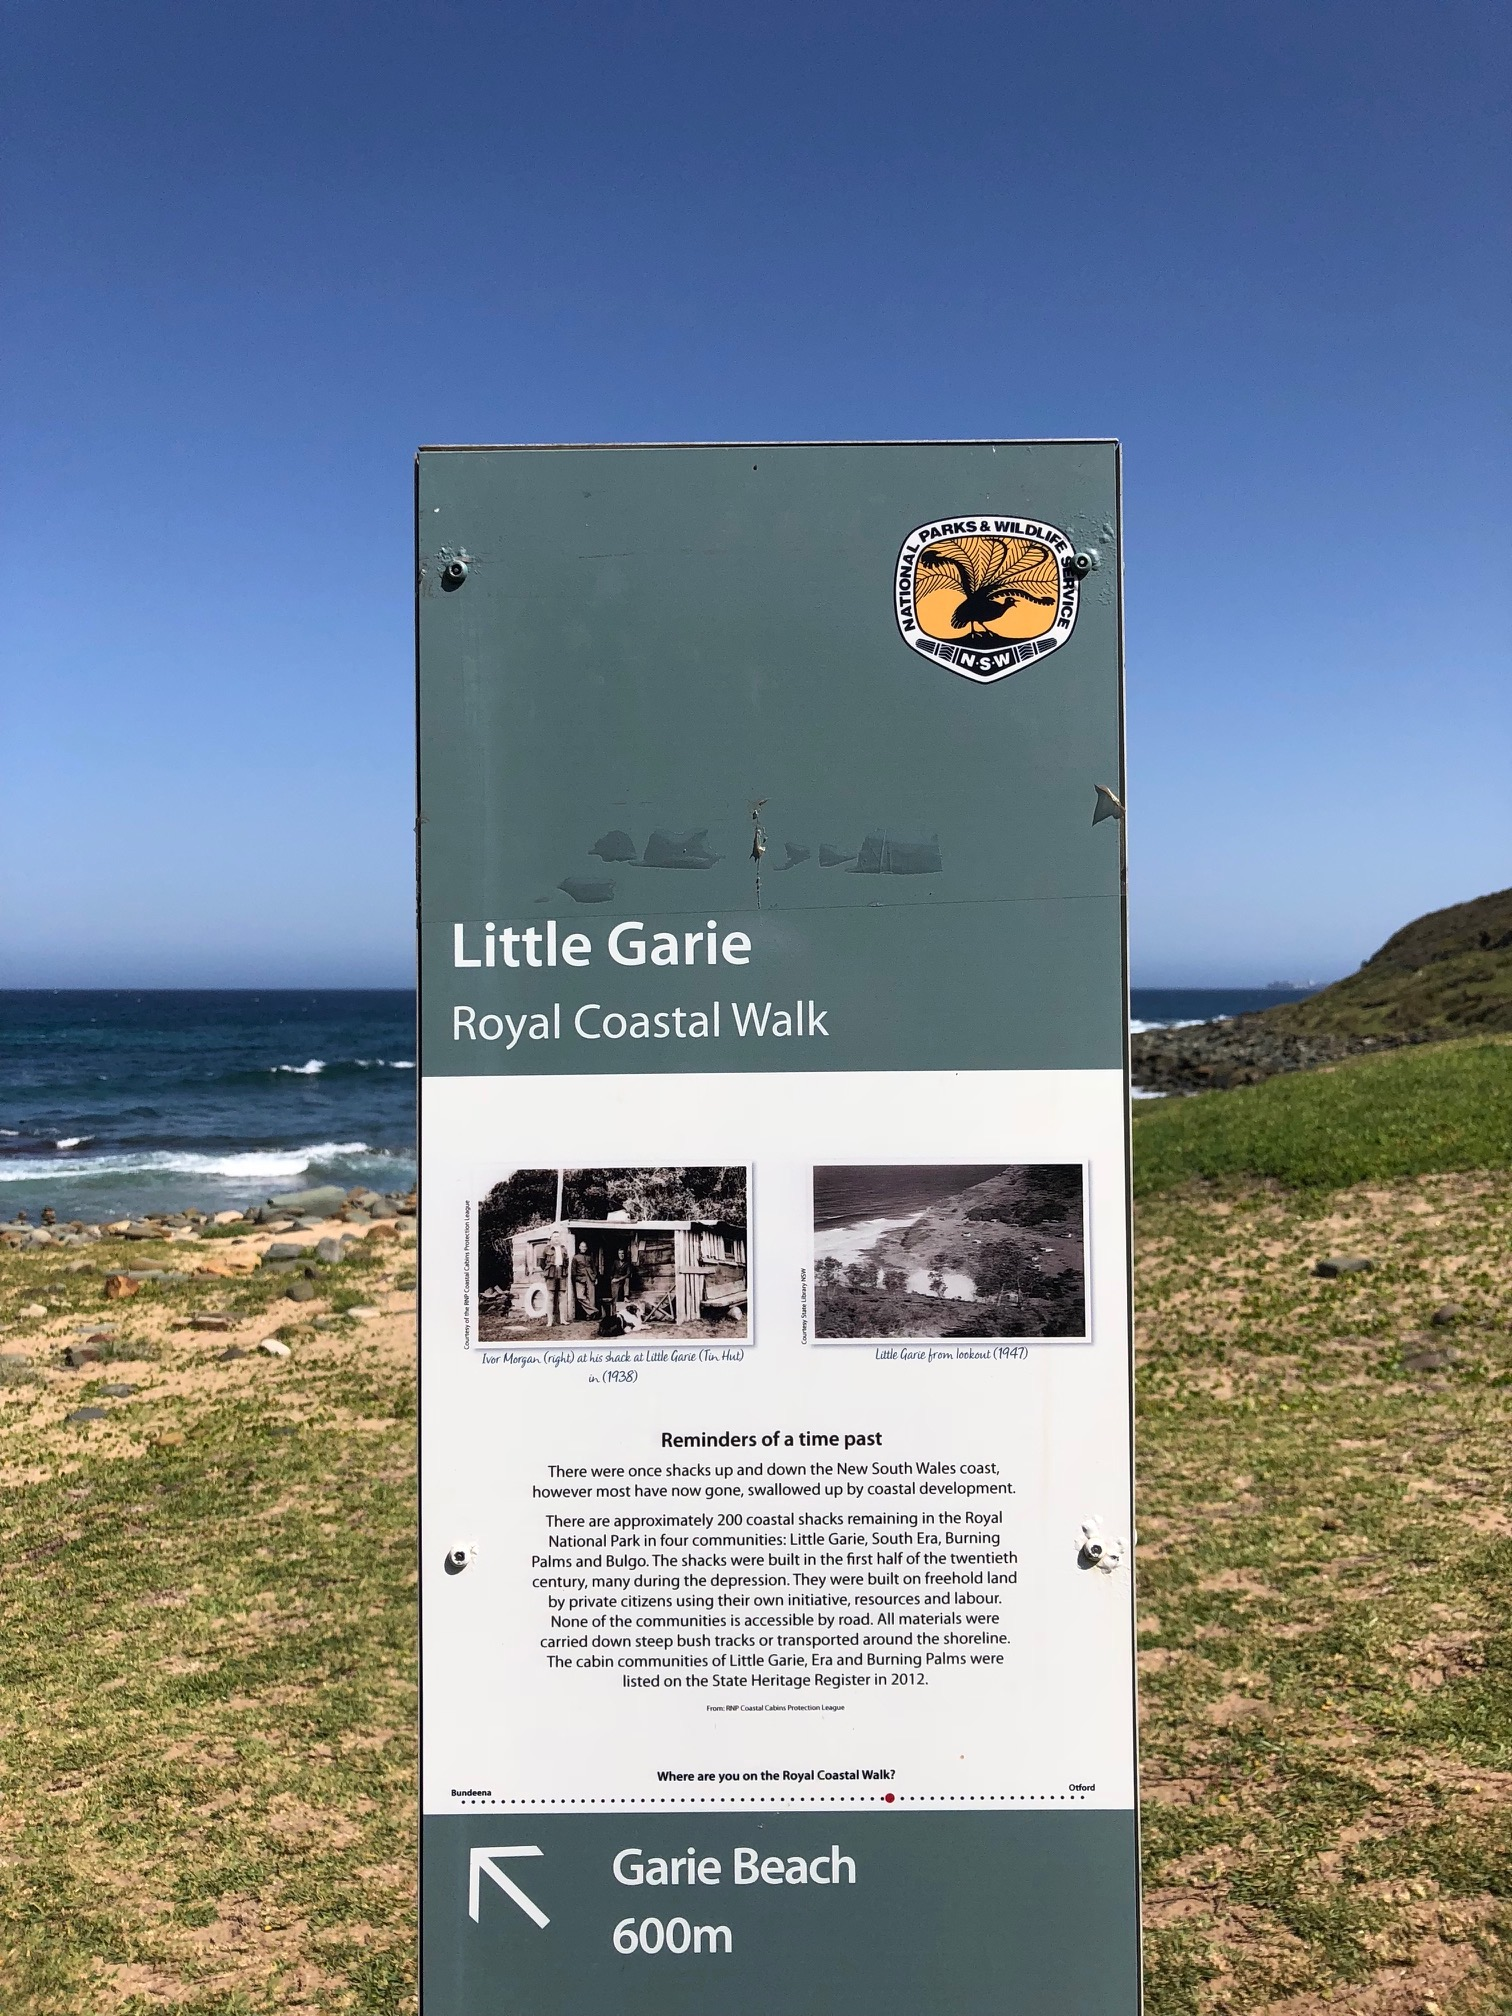 The cabin community of Little Garie in what is now Royal National Park. Cabins are no longer built here in the National Park, but after decades of campaigning by residents of the shack communities, the existing cabins earned protection from demolition.